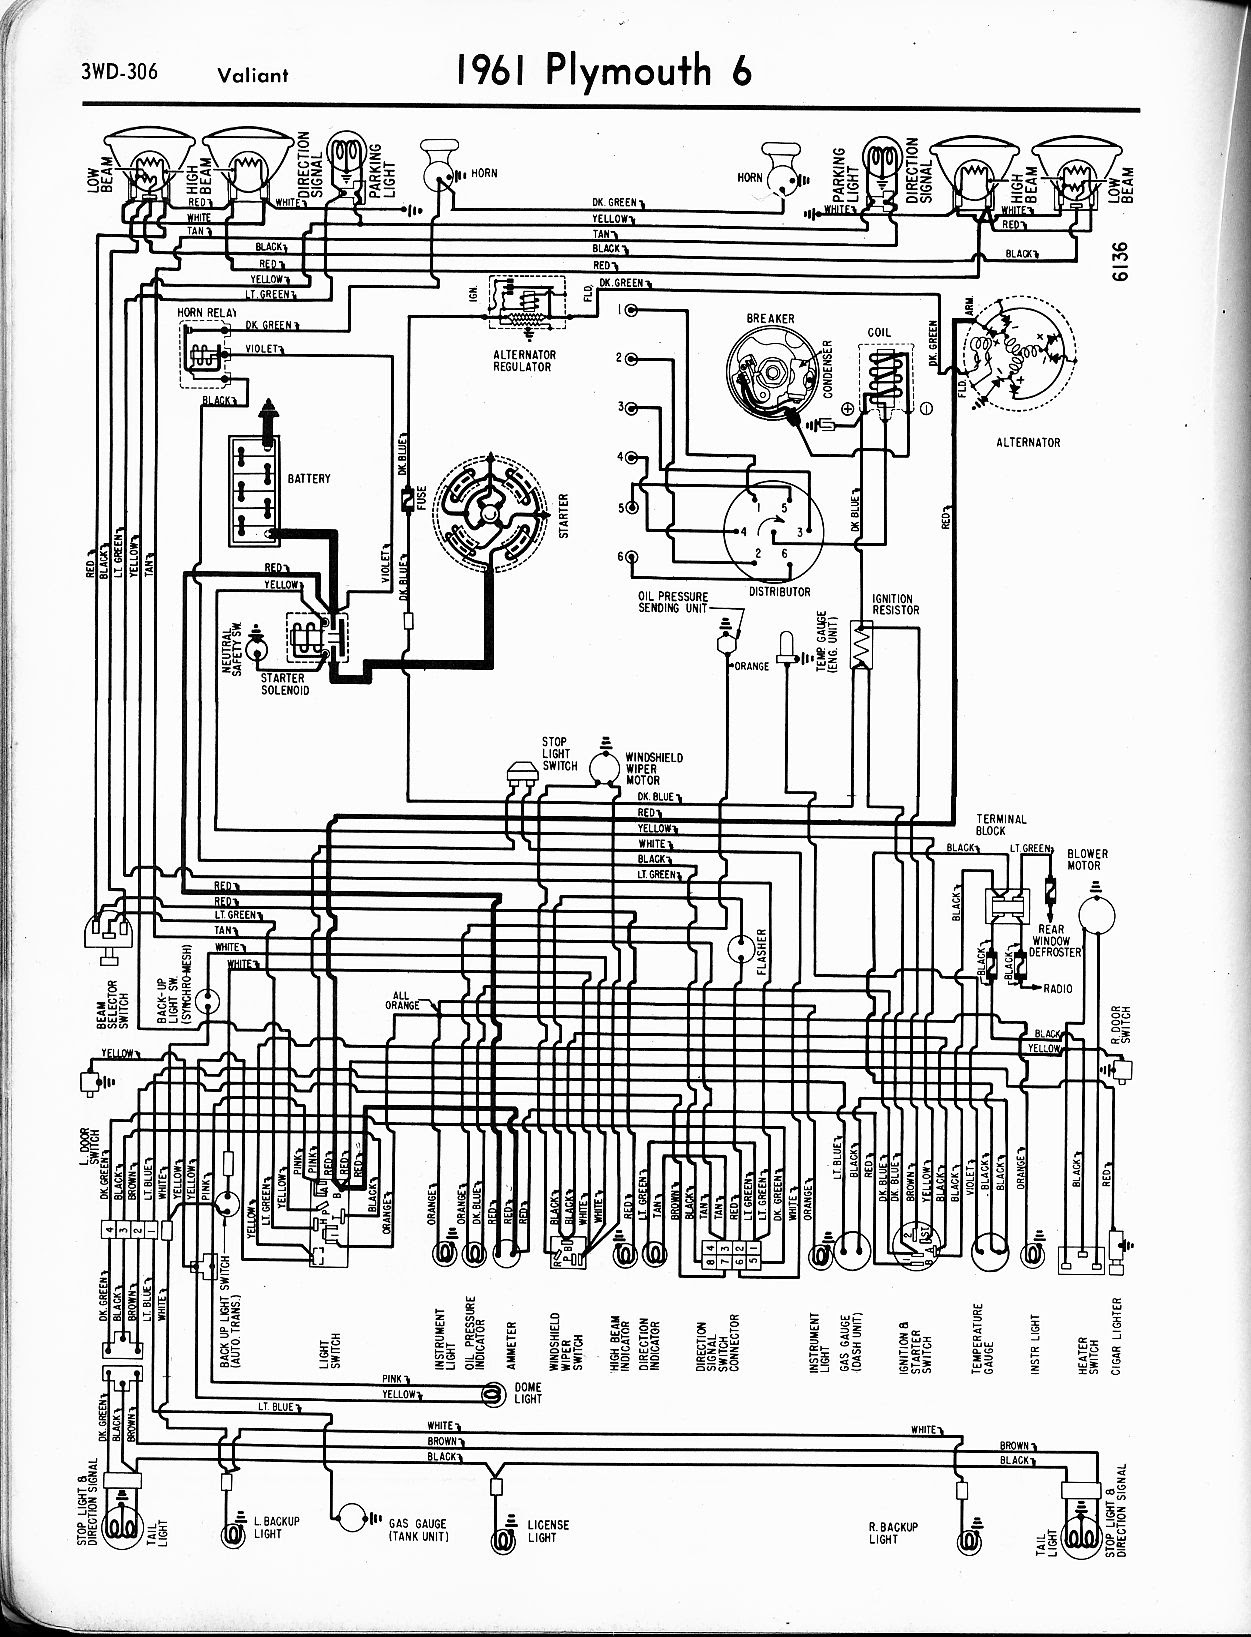 1976 Plymouth Ignition Wiring Diagram Wiring Diagram Instruct Instruct Cfcarsnoleggio It